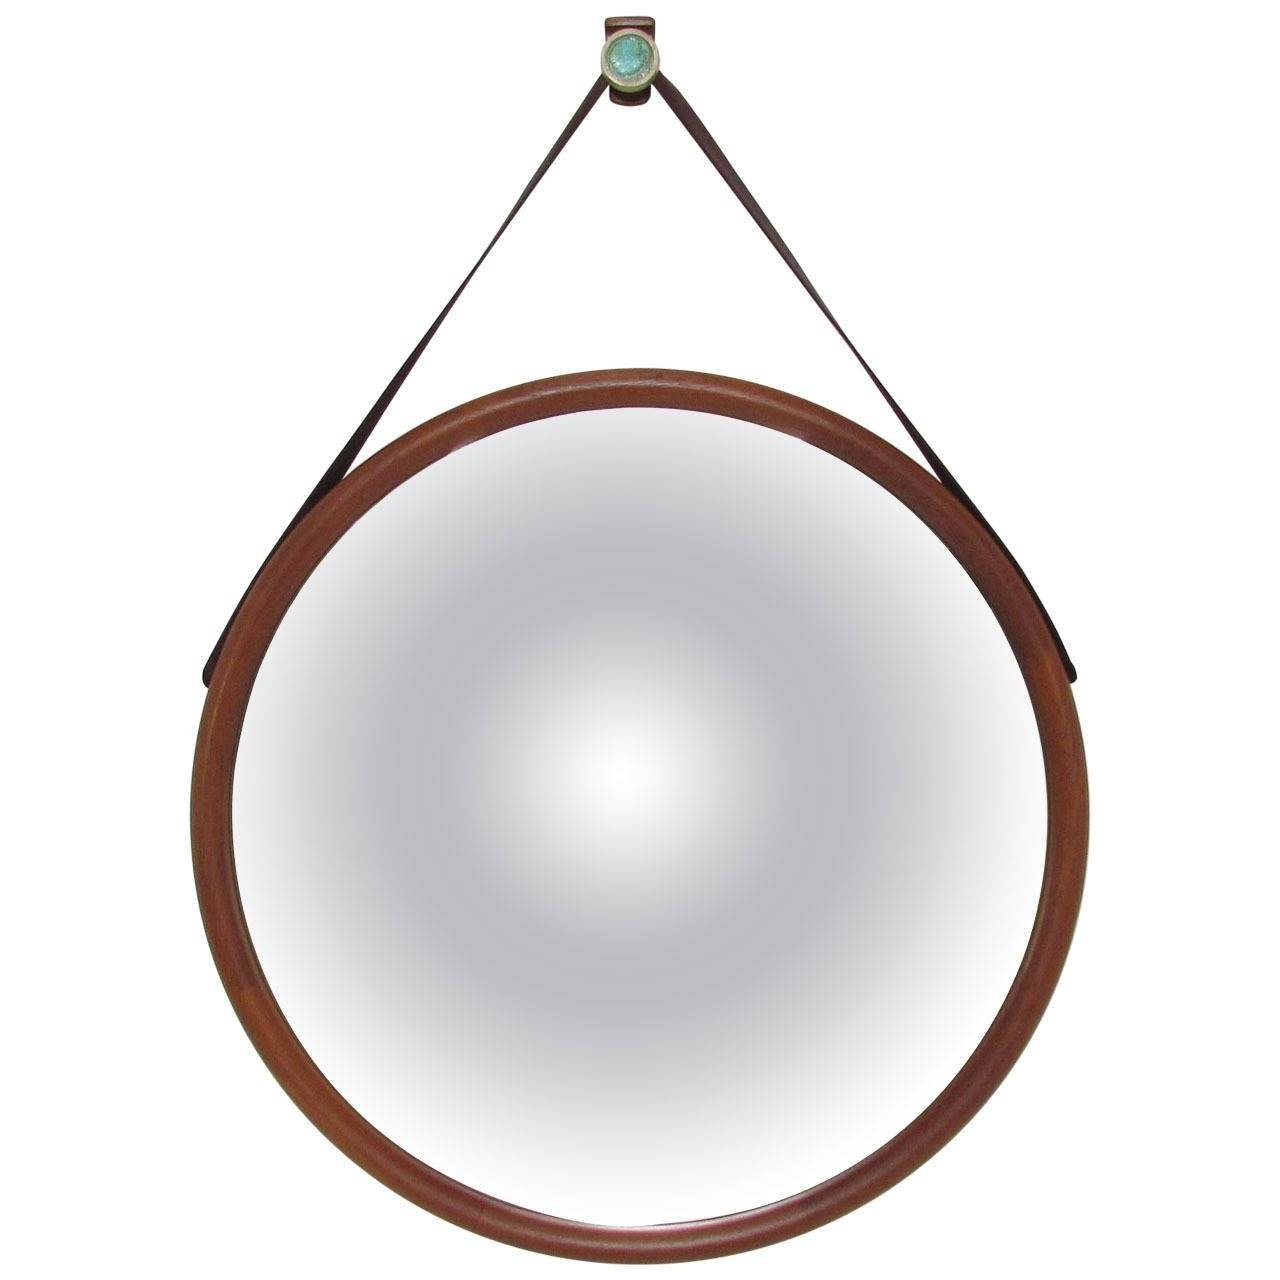 Large Danish Teak Wall Mirror With Leather Strap And Tile Hook At Regarding Leather Wall Mirrors (View 19 of 25)